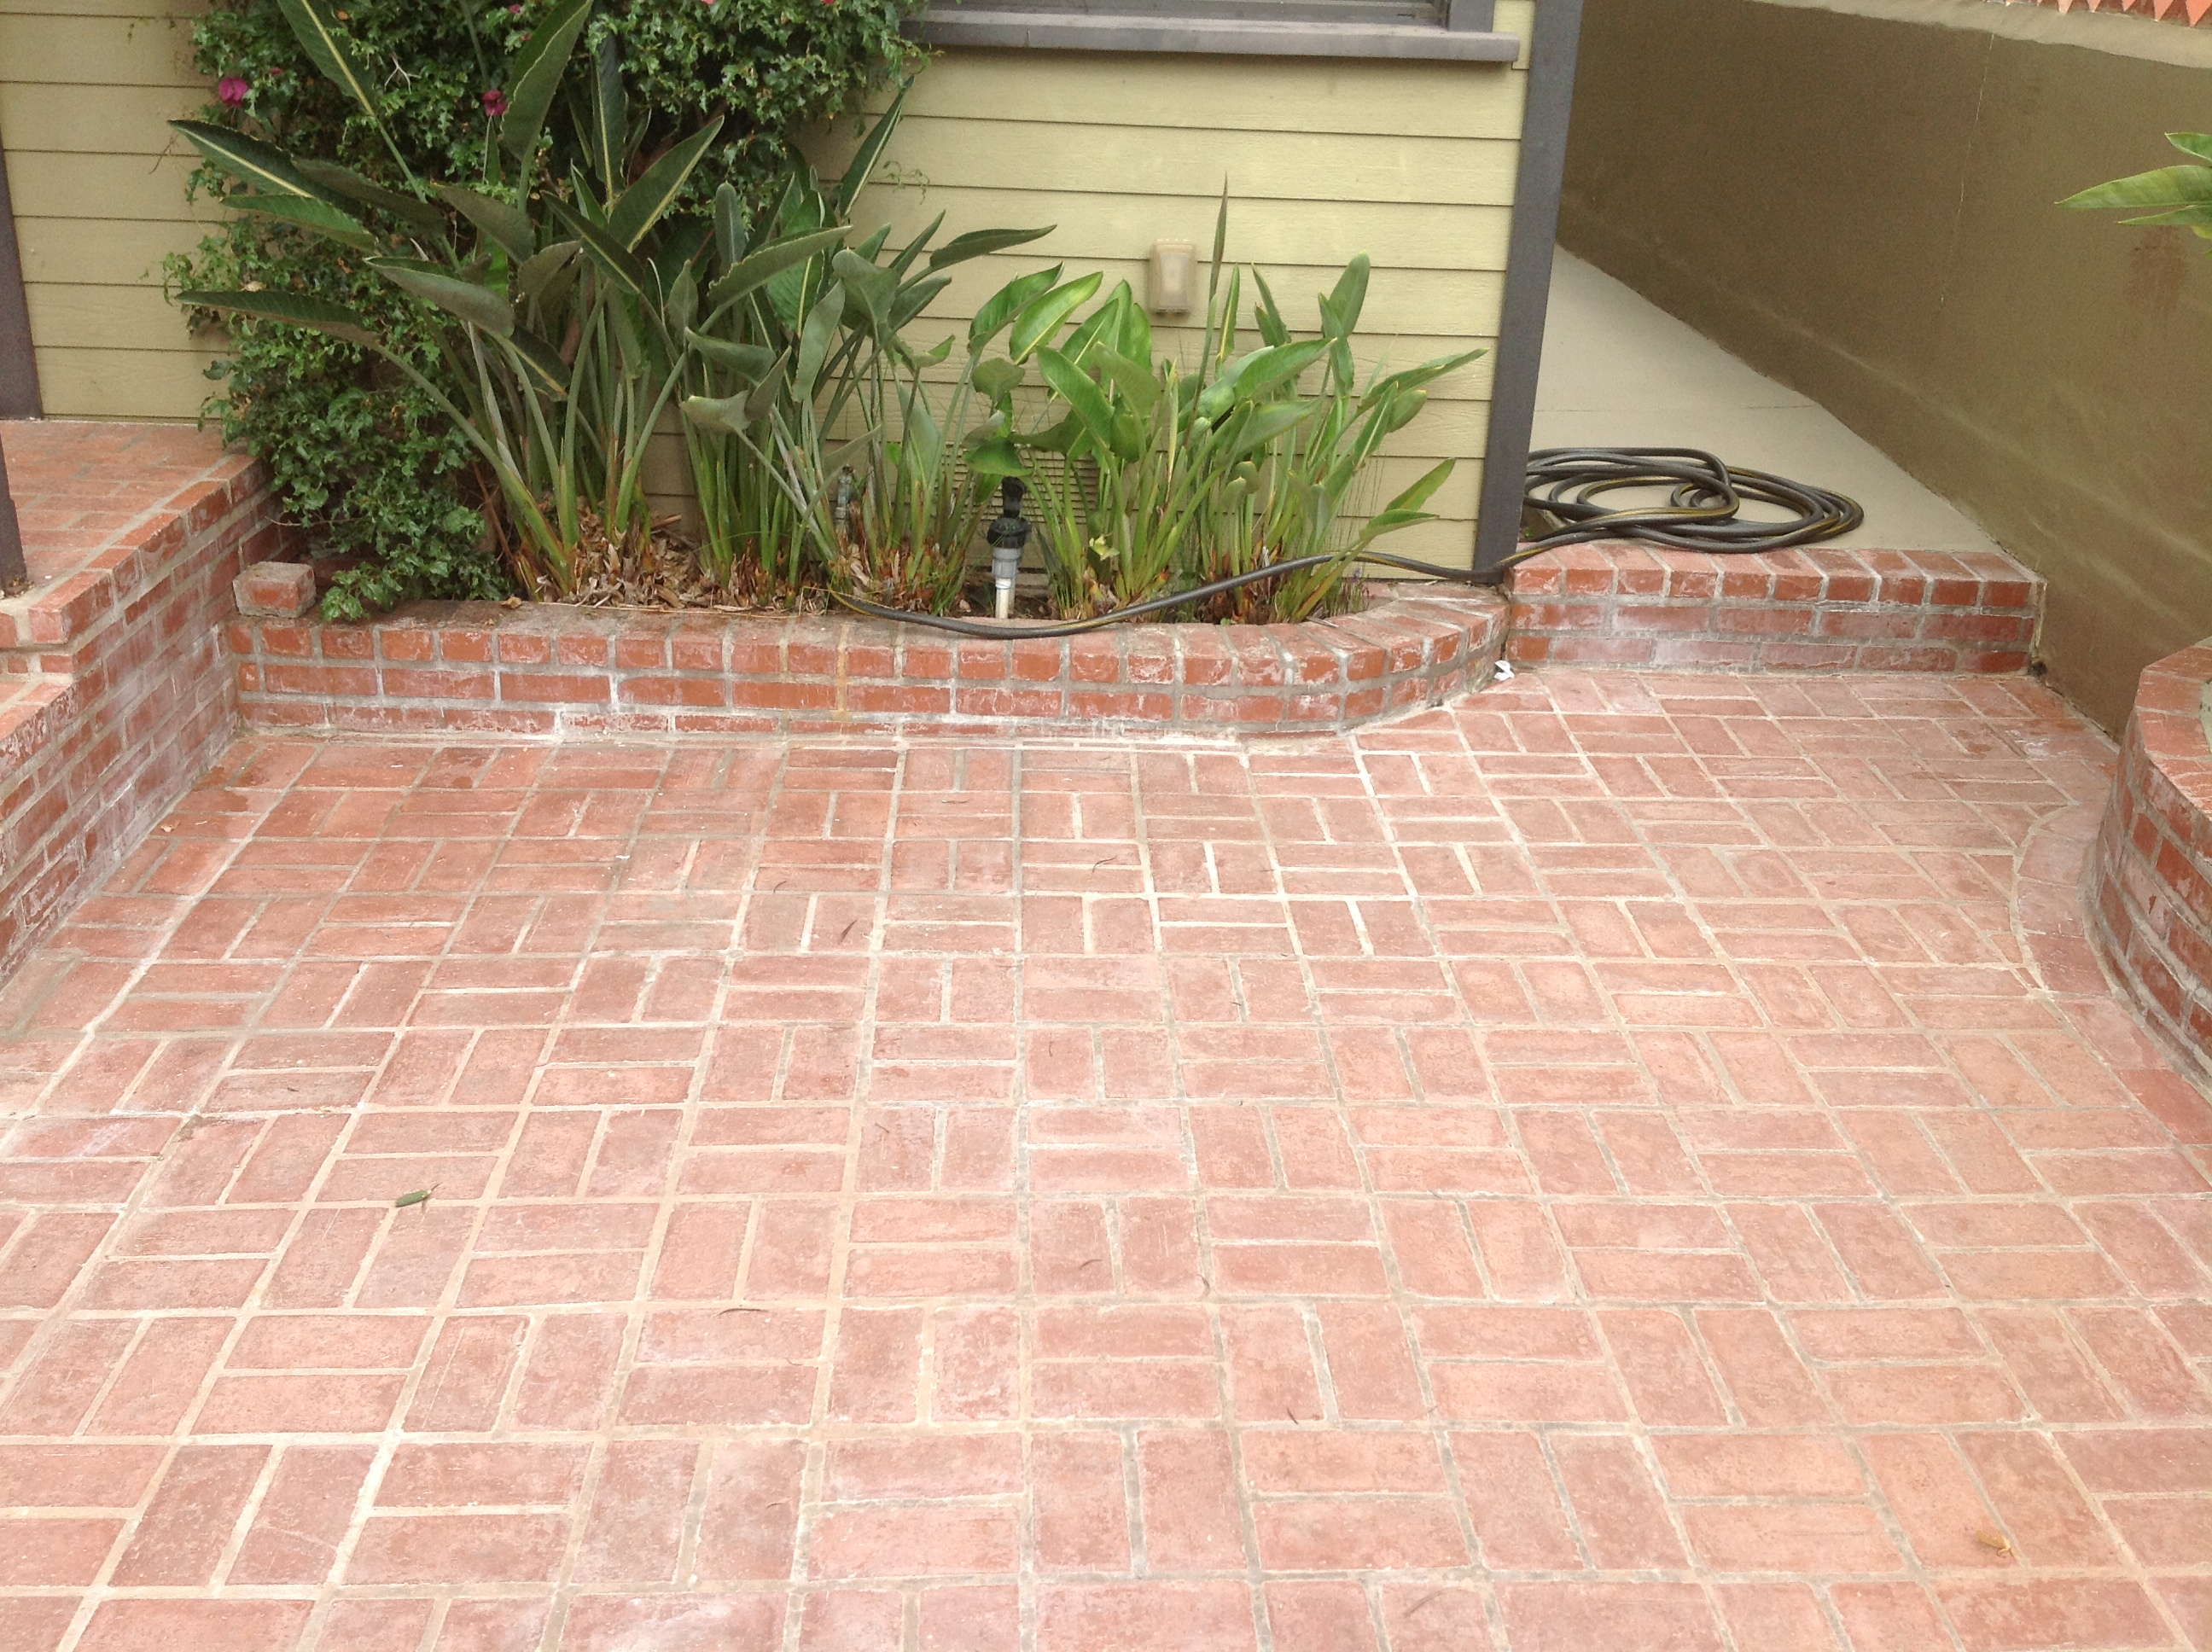 Machines for cleaning mexican tile saltillos slate flagstone and sanded sealed worn bricks dailygadgetfo Images